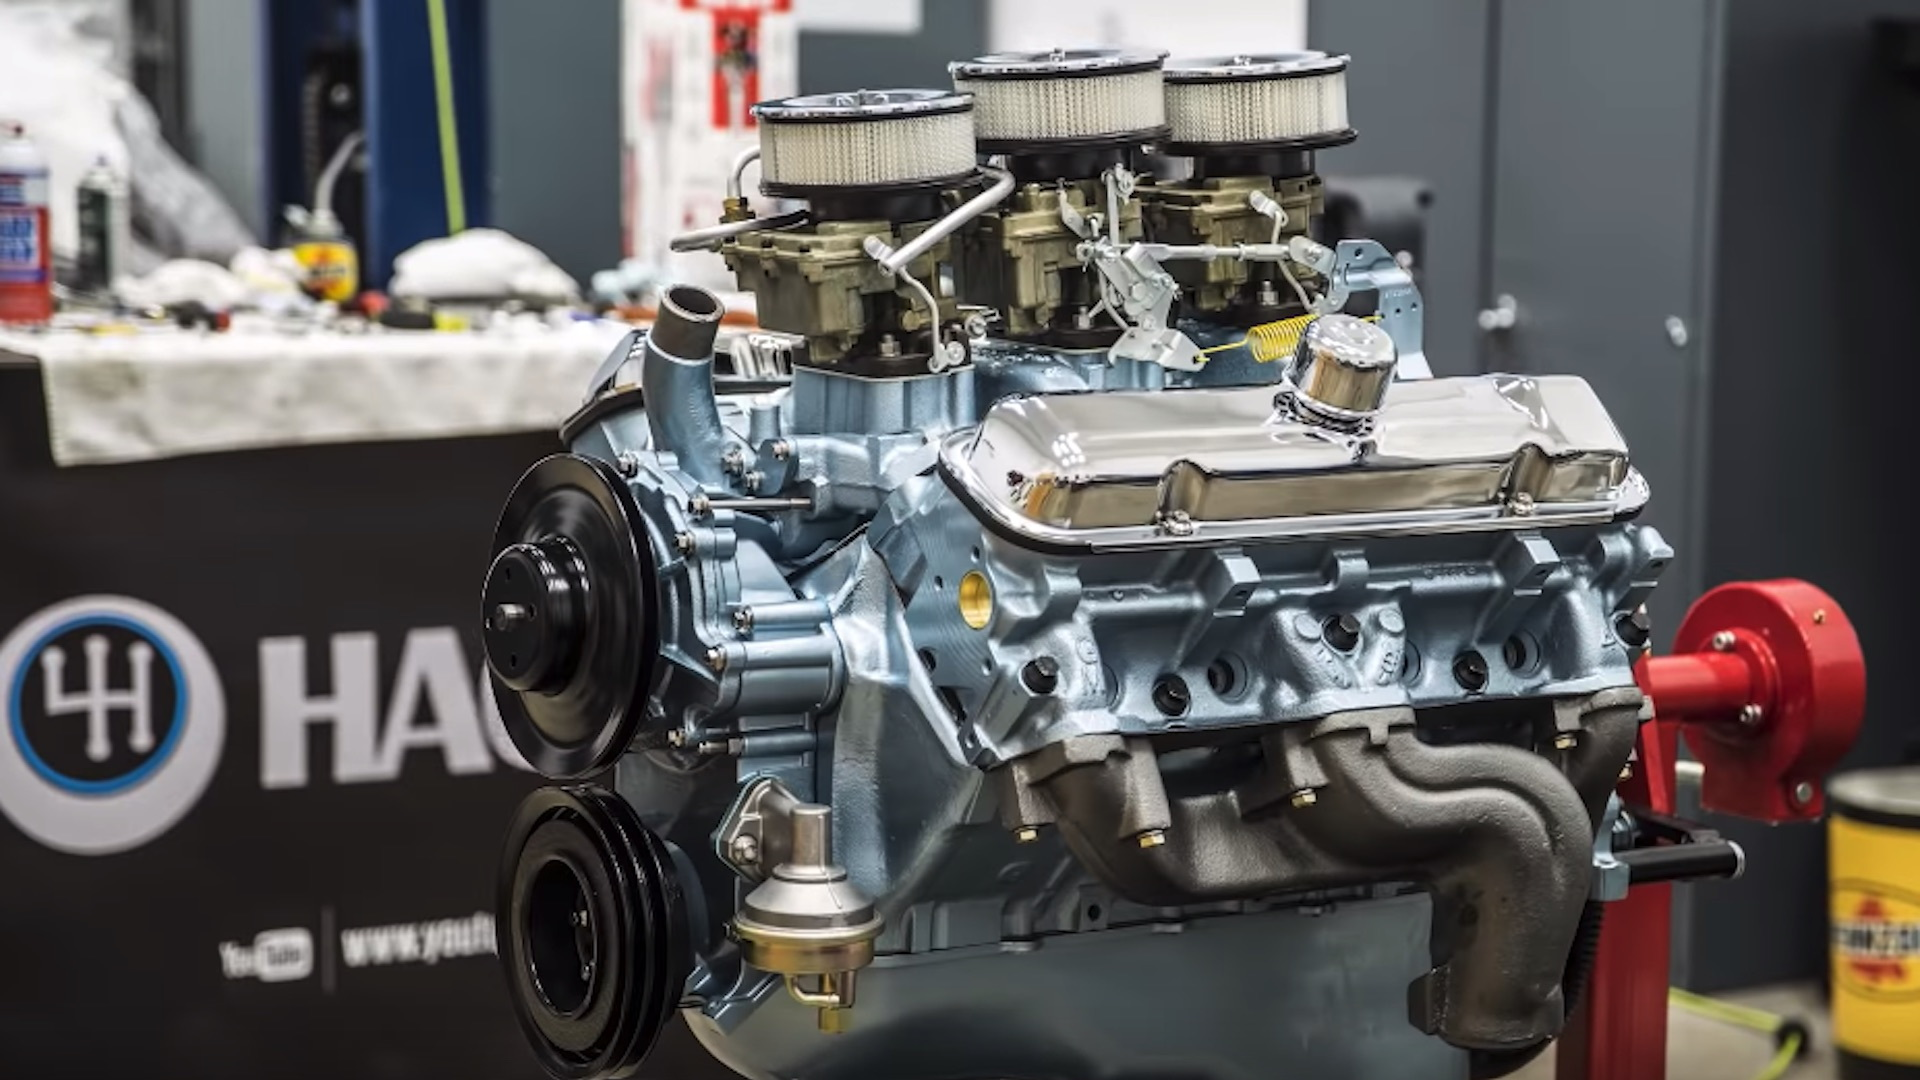 Hagerty rebuilds 389 ci Tri-Power Pontiac V-8 engine